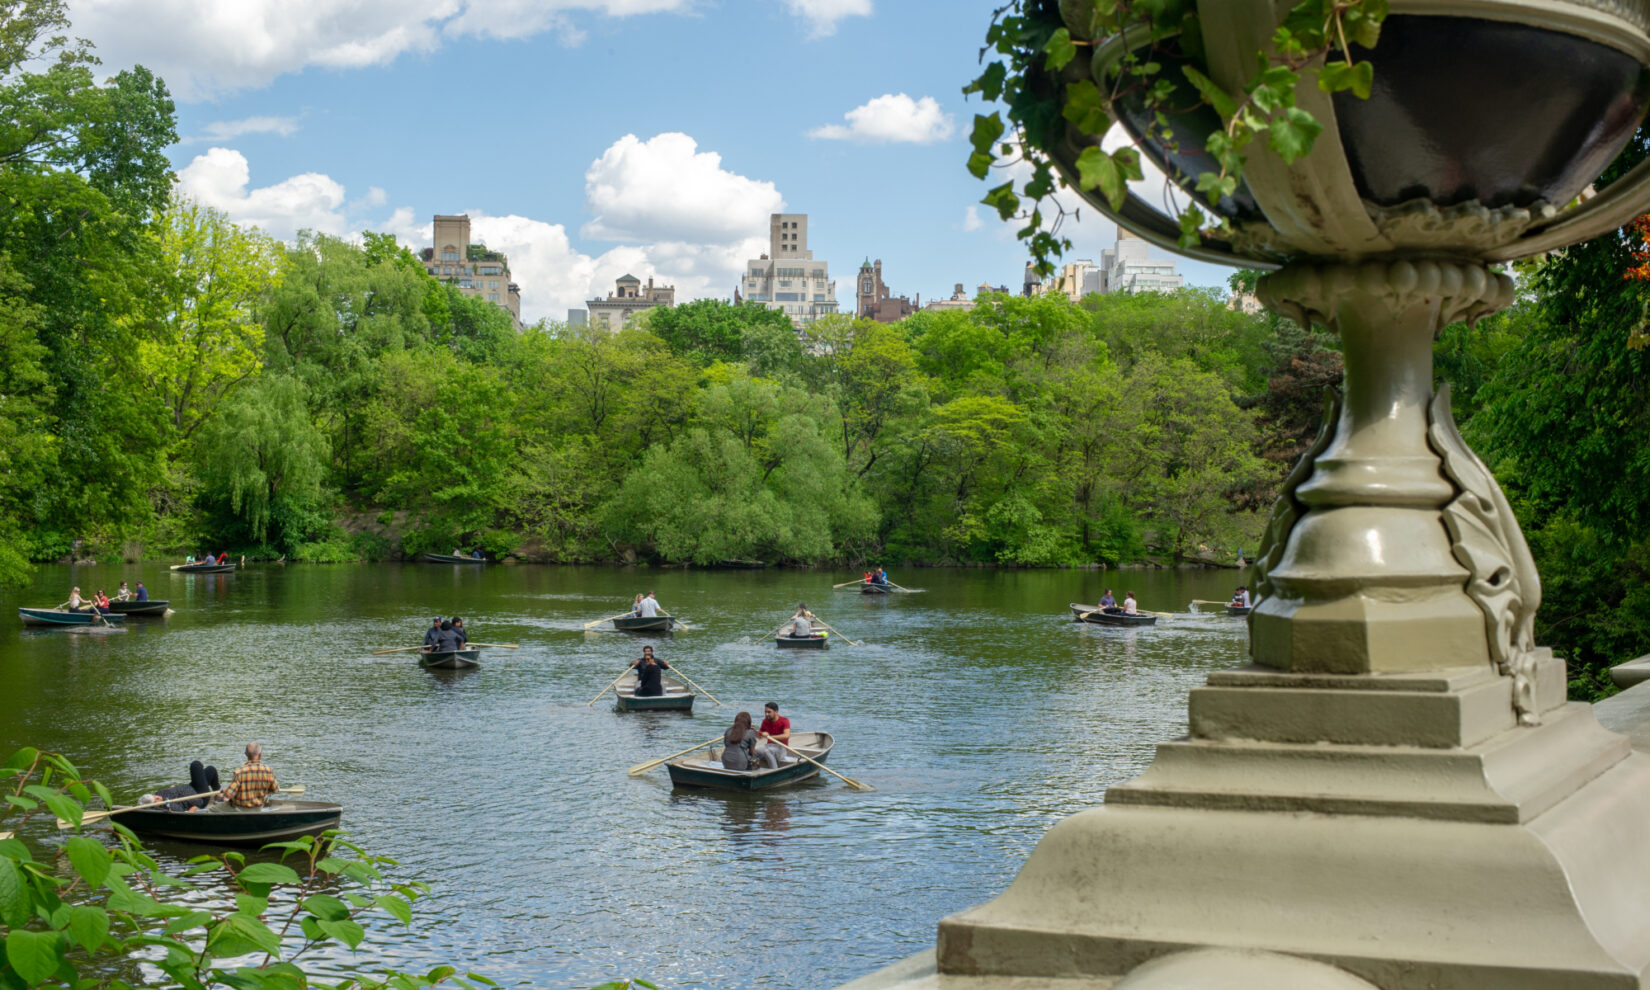 Rowboats on the Lake, viewed from Bethesda Terrace